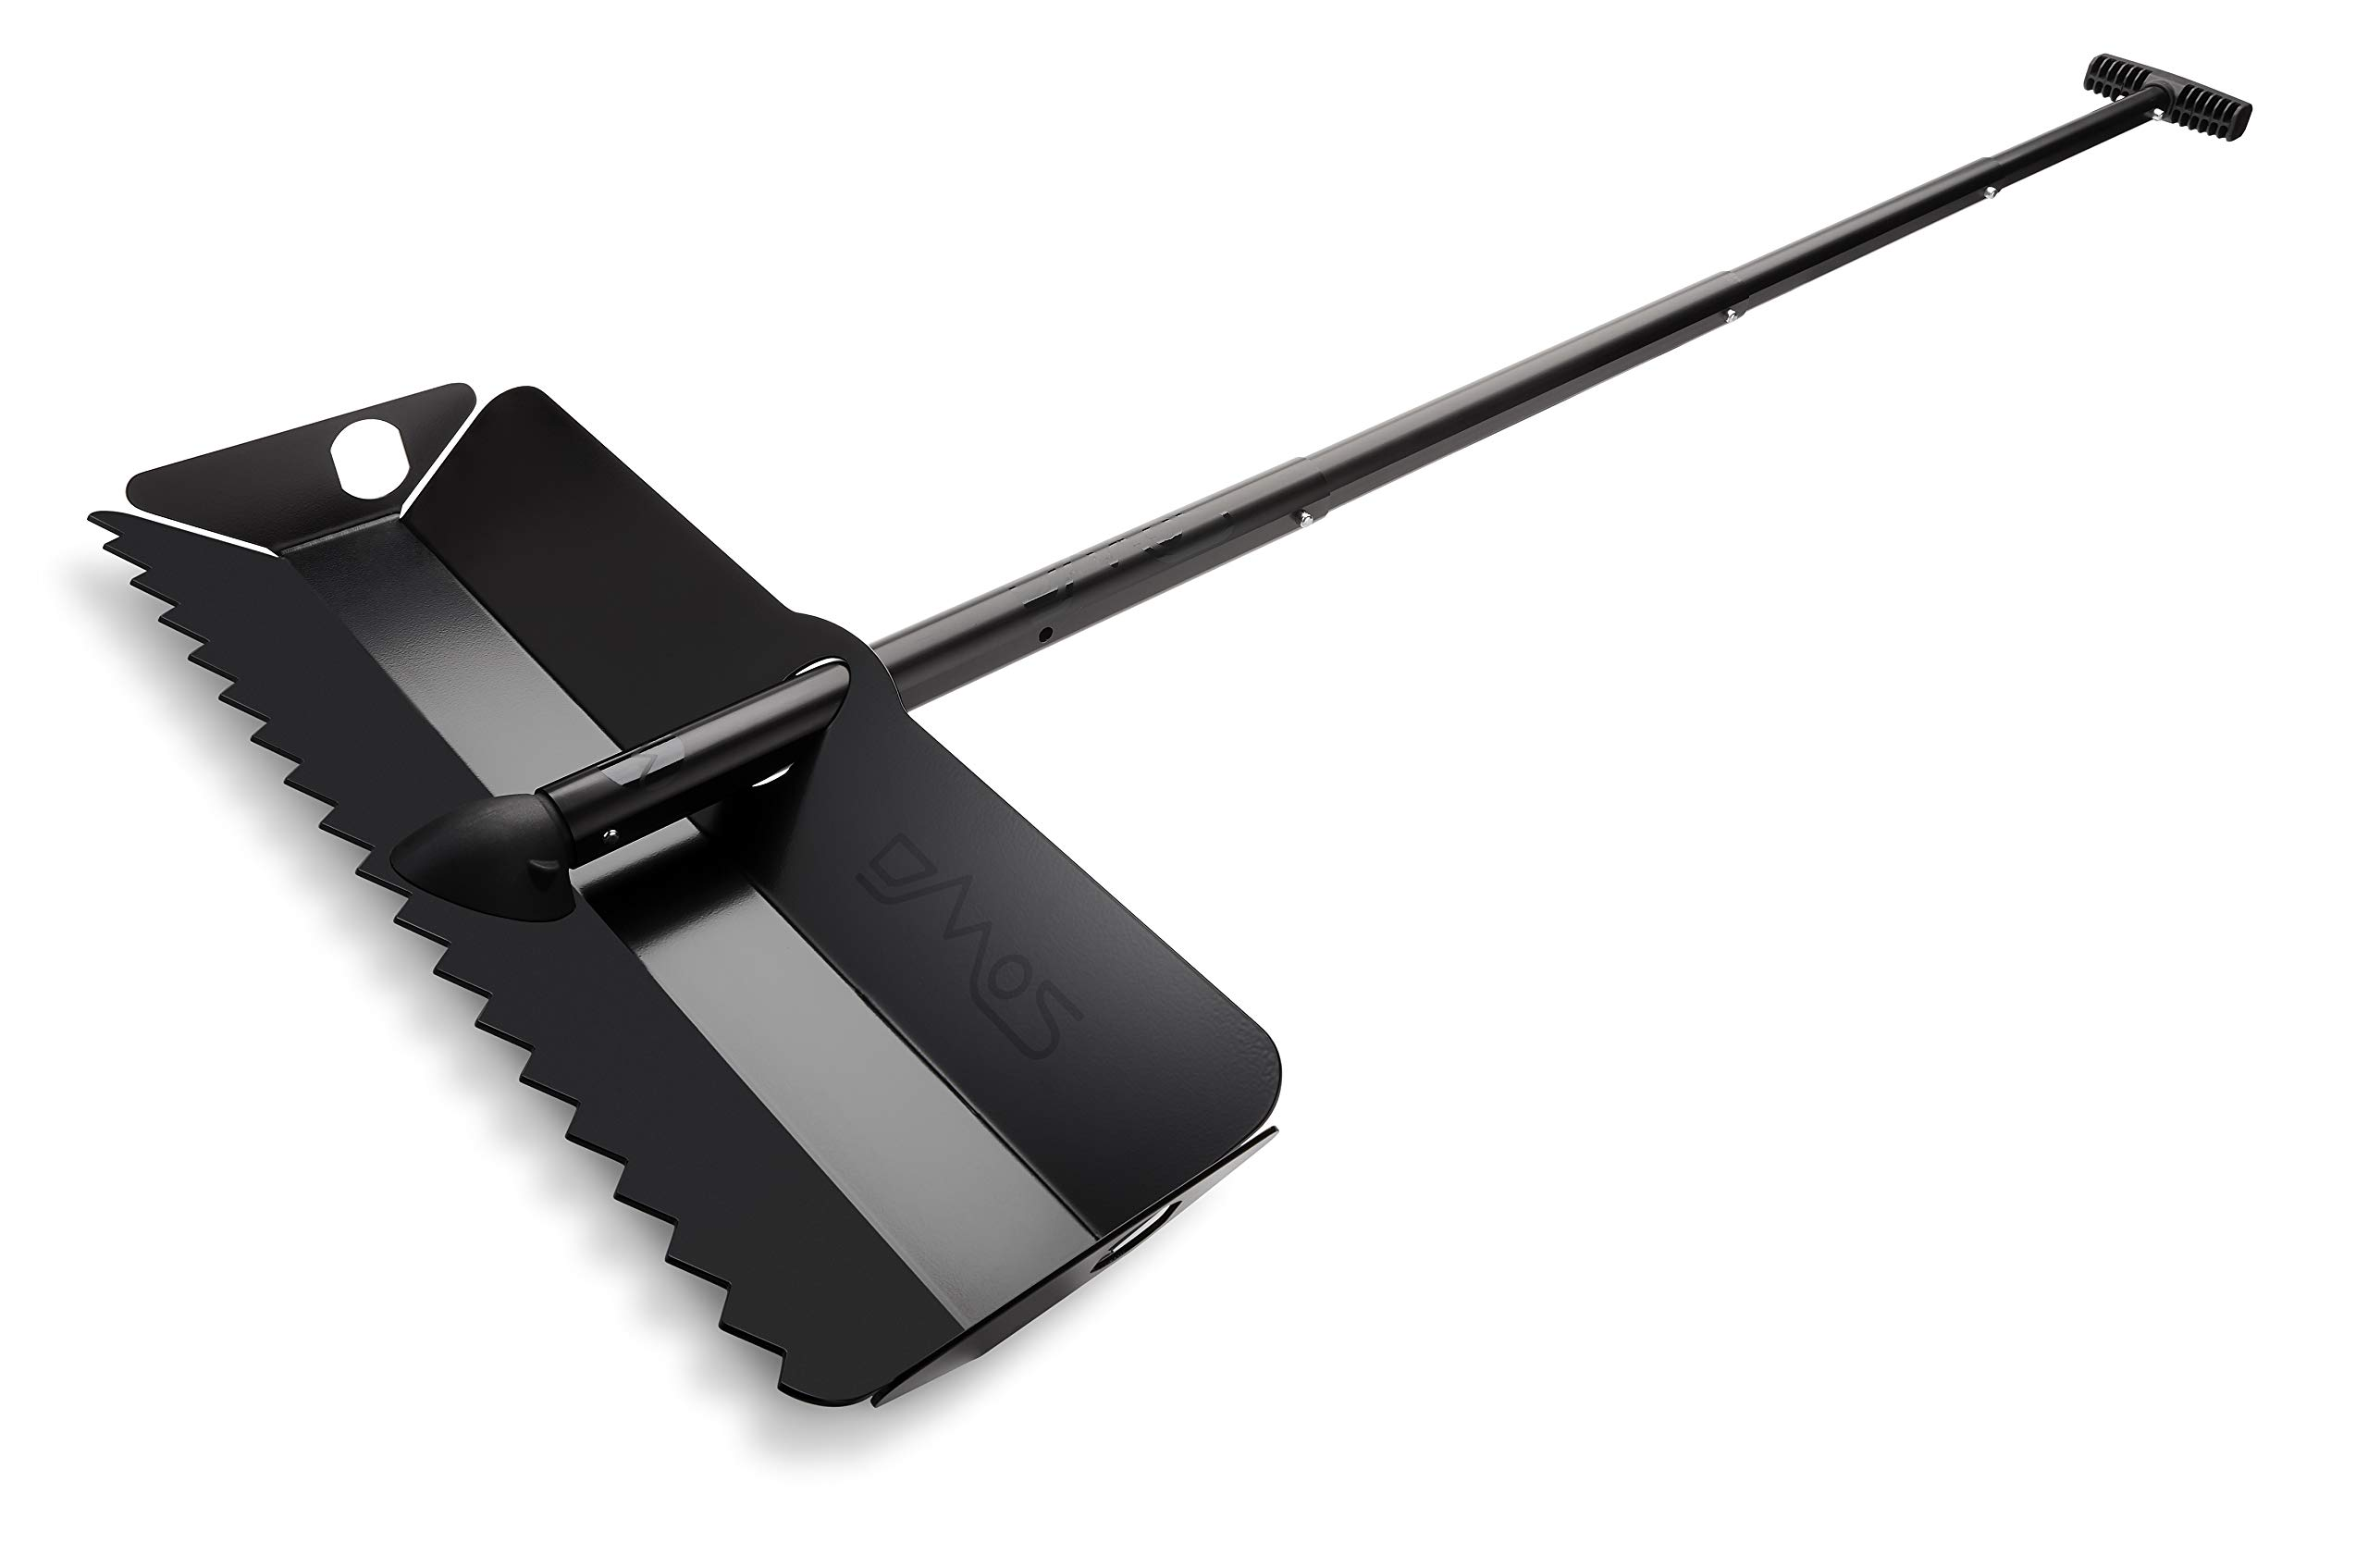 DMOS Stealth Pro Snow Shovels: Packable Car and Survival Snow Shovel - Lightweight Compact for Snow Removal by DMOS